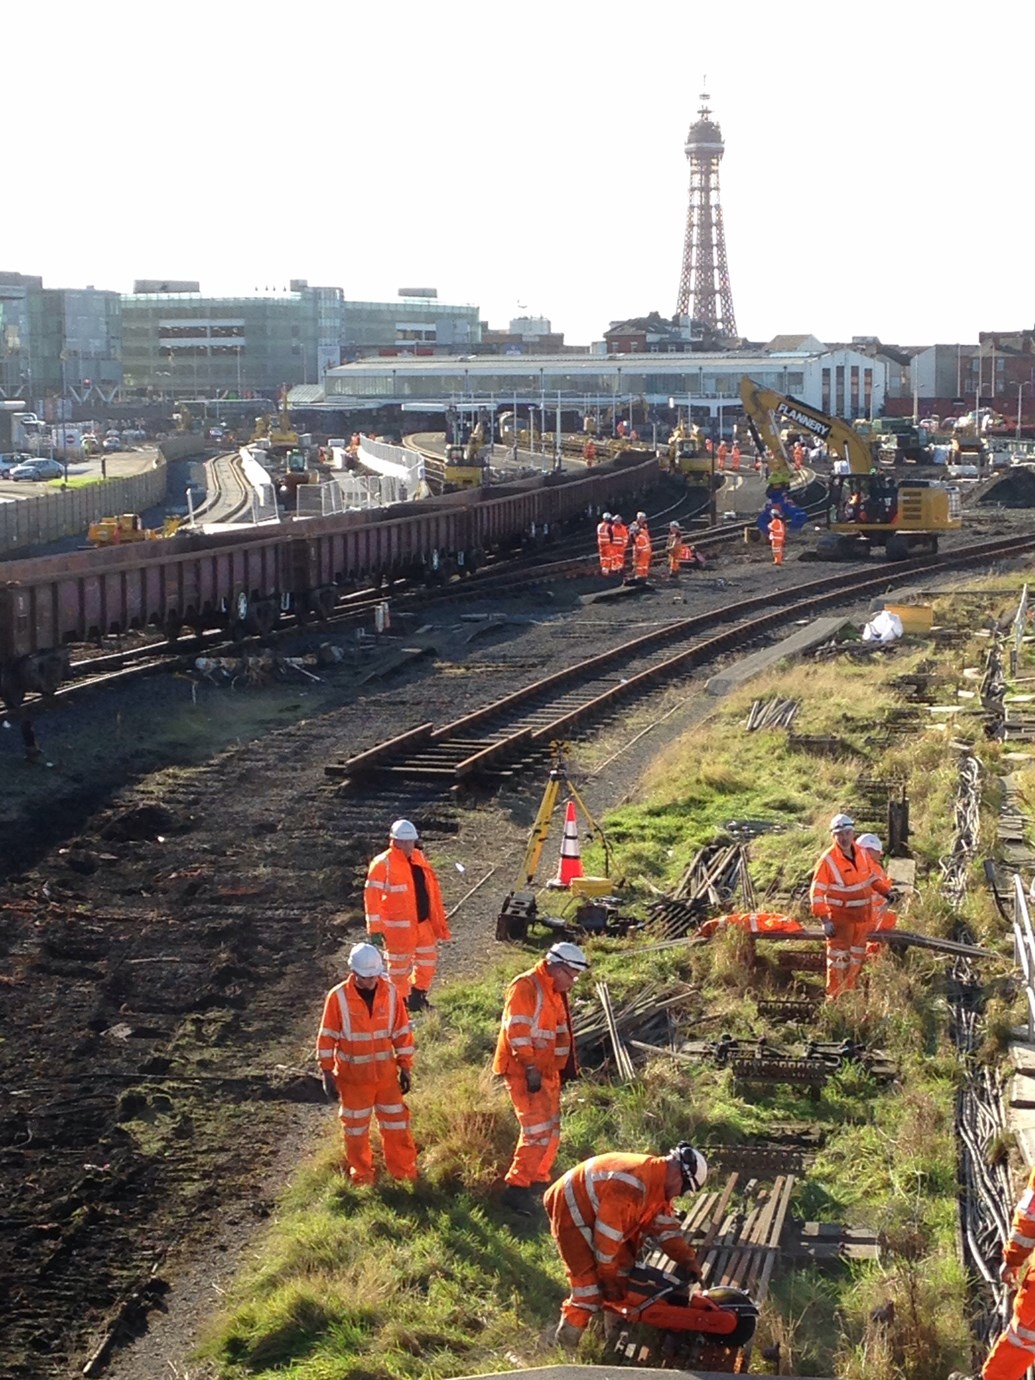 Blackpool's railway revolution is right on track: Blackpool week 1 - removing the track